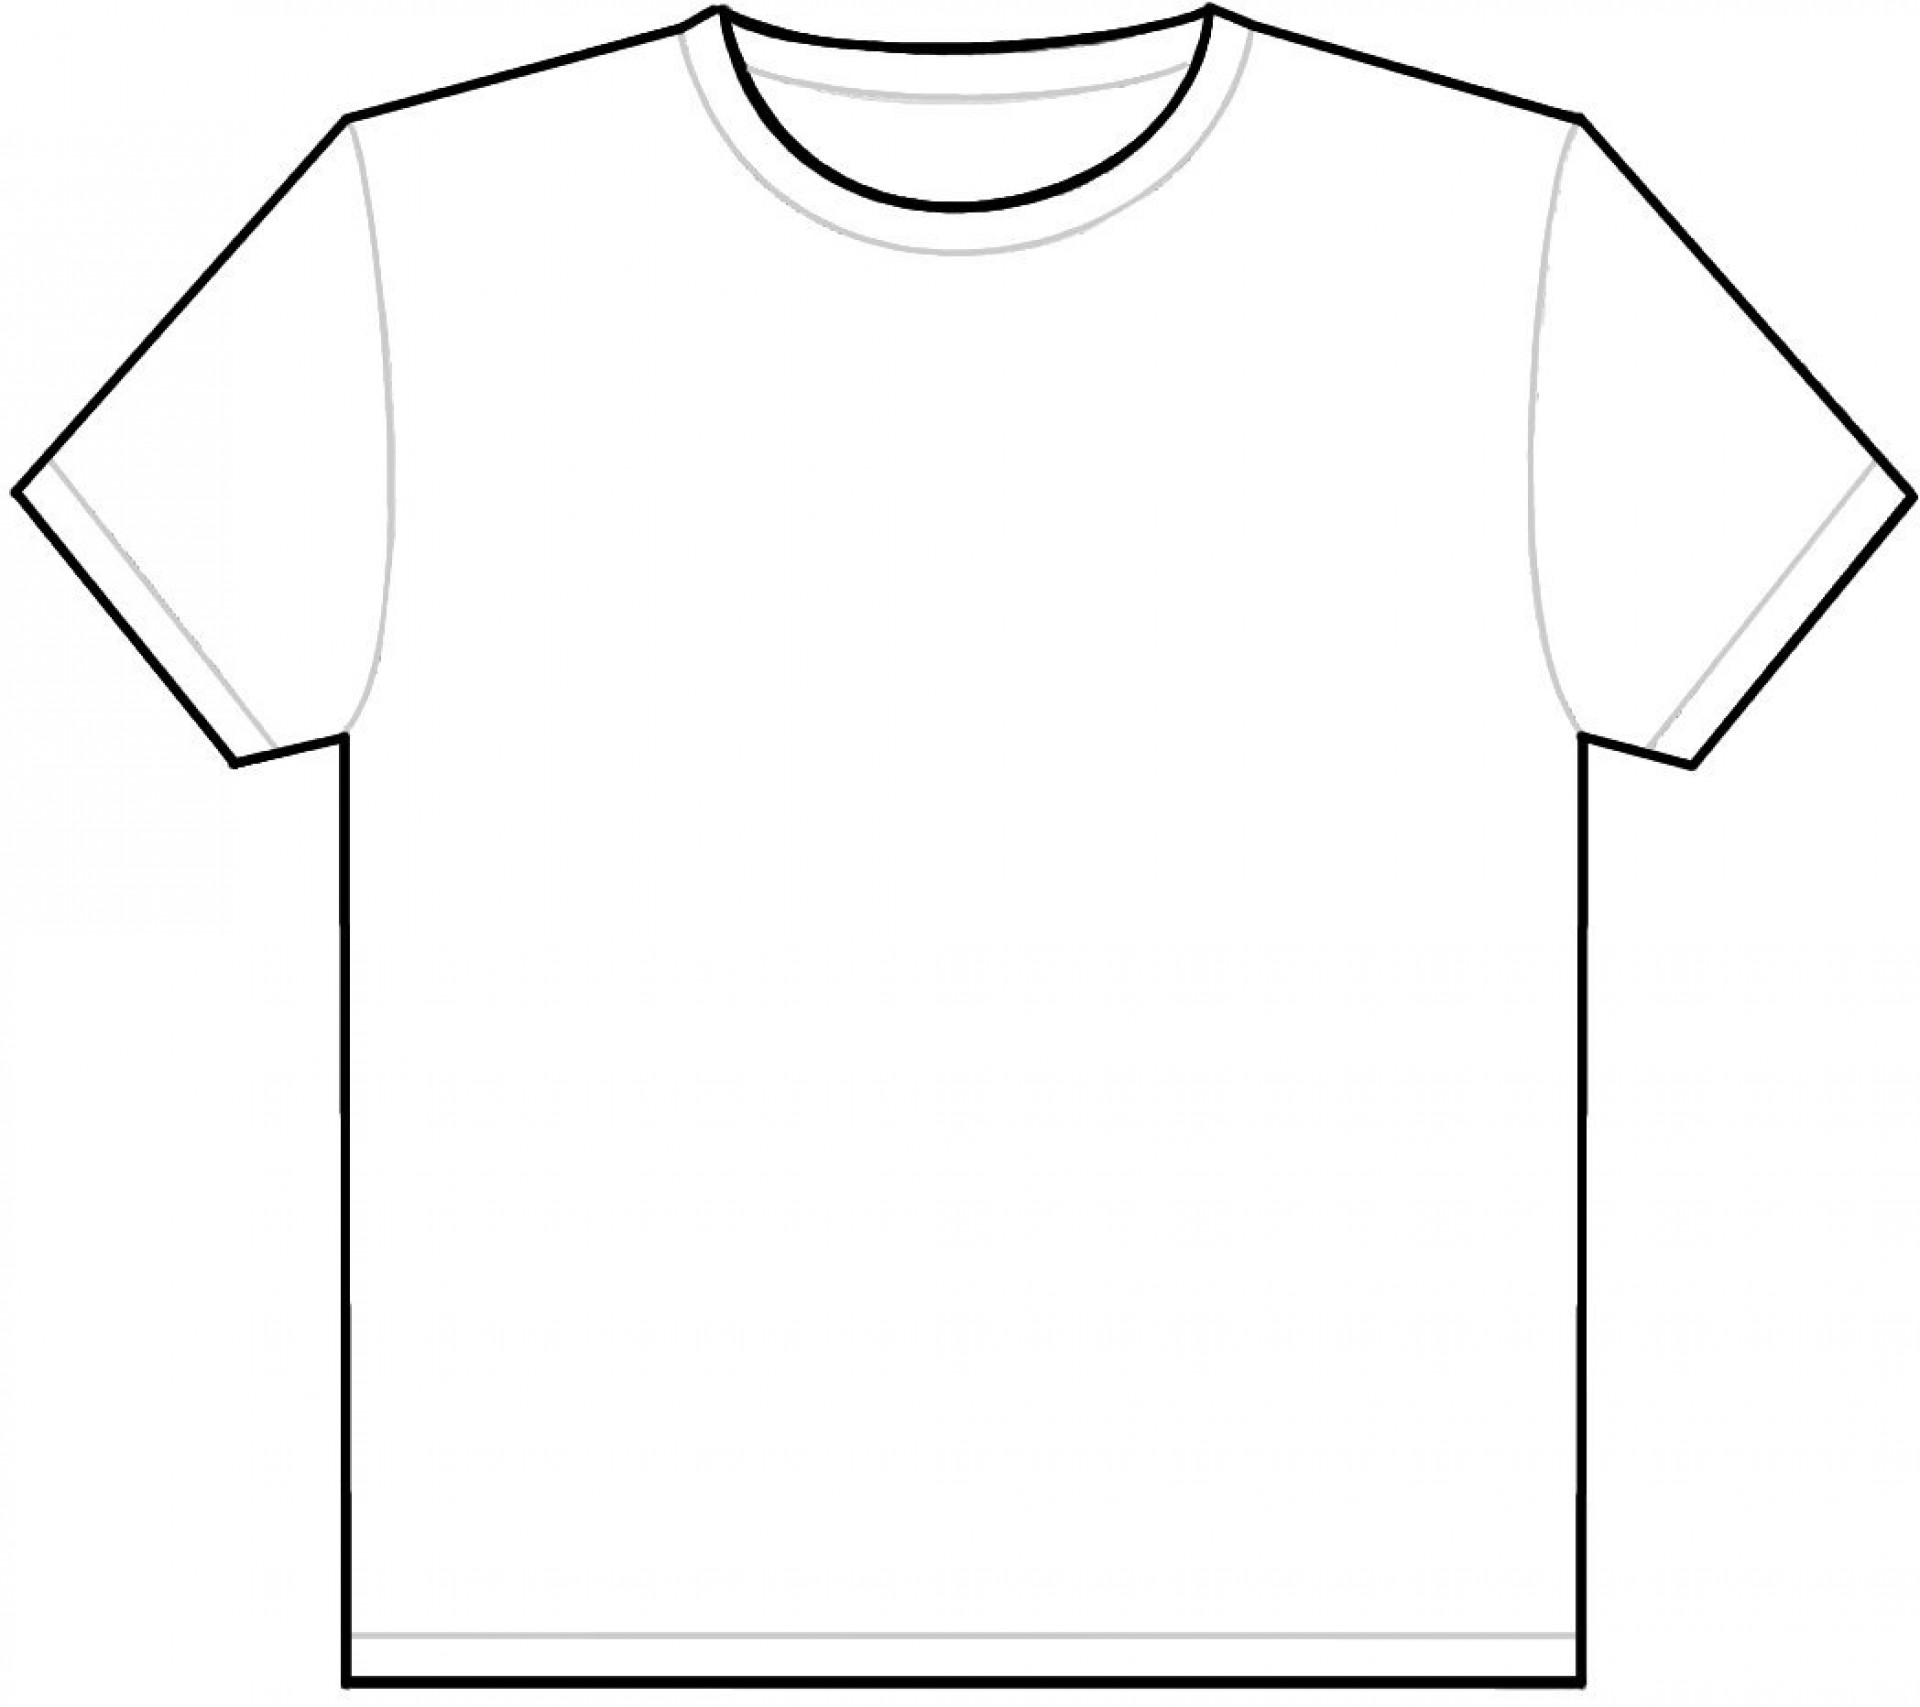 007 Template Ideas Free Tshirt Design White And Black T.